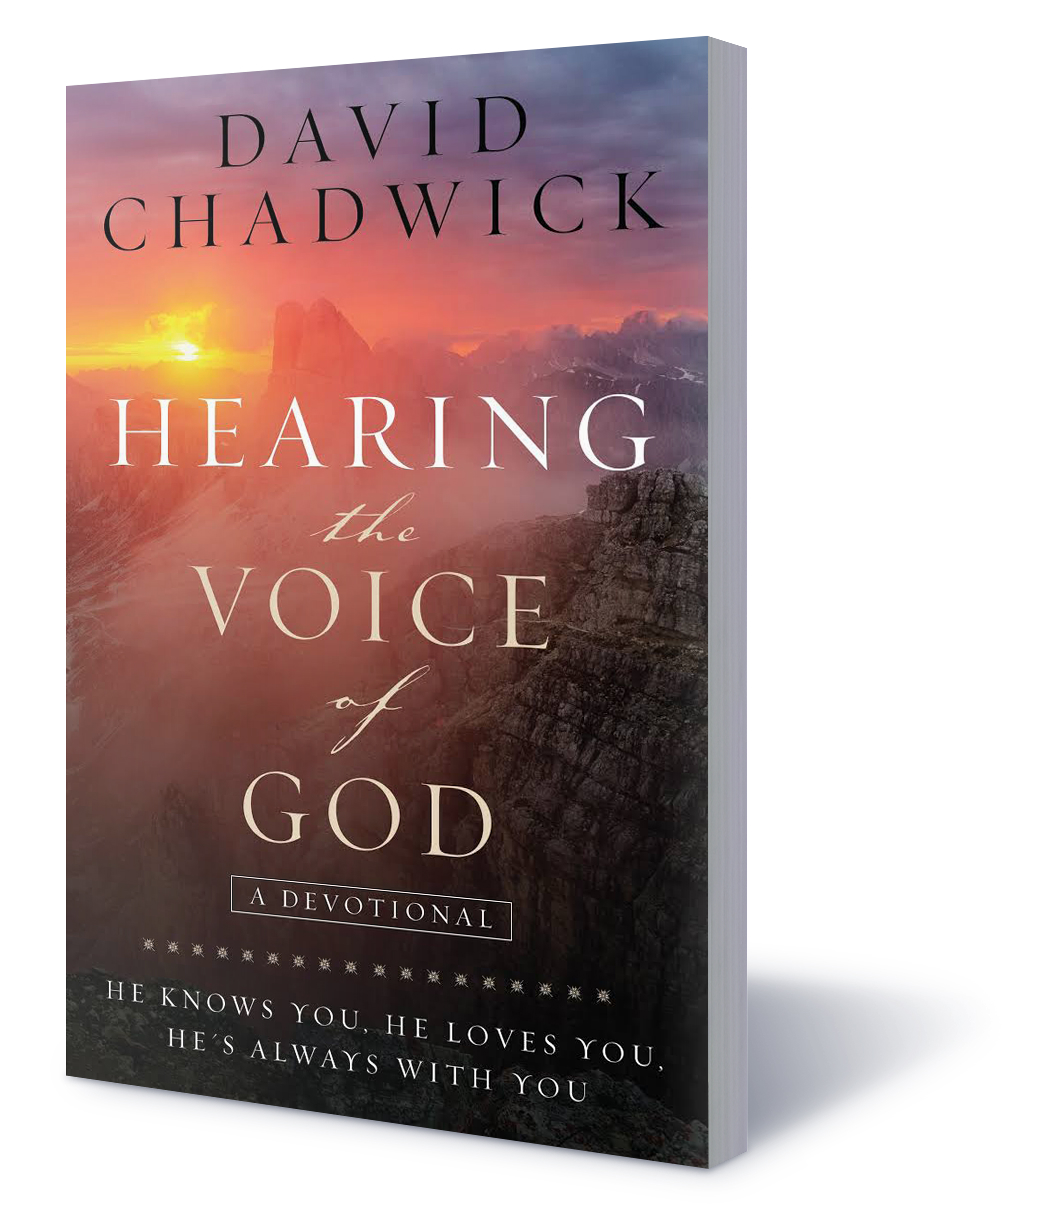 Experience the transforming power of hearing God's voice